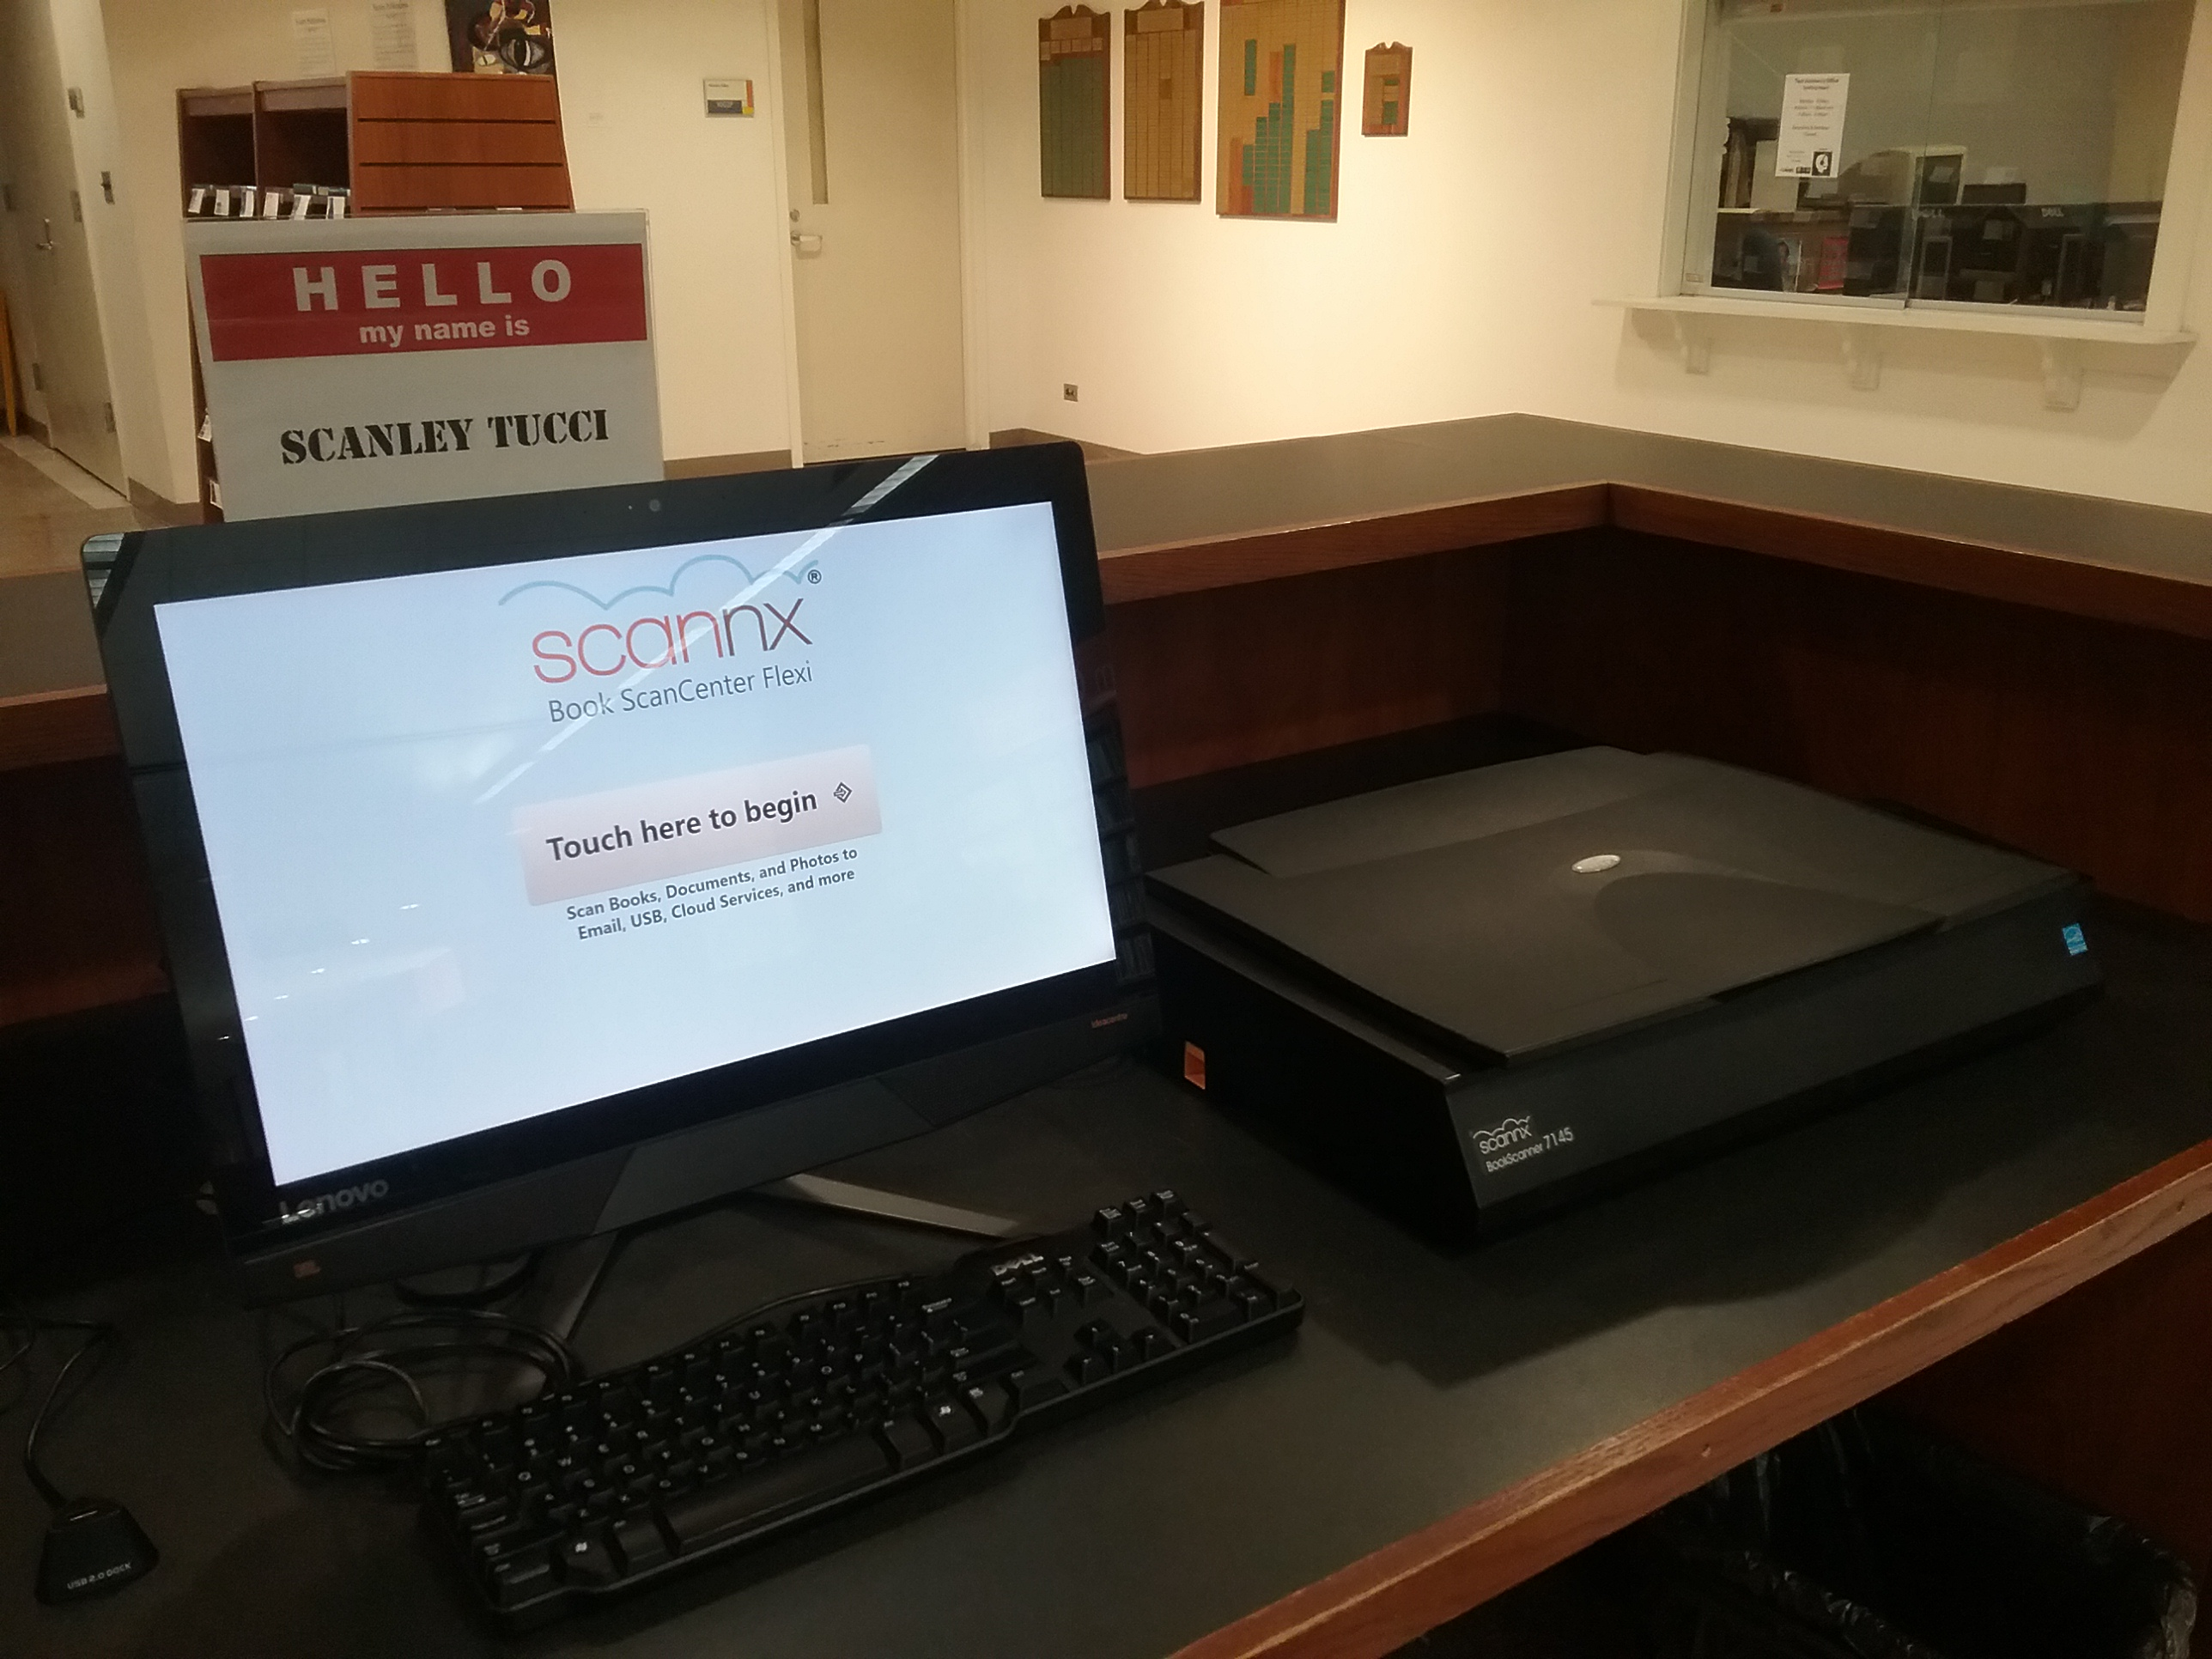 Scanley Tucci scanning station at the library.